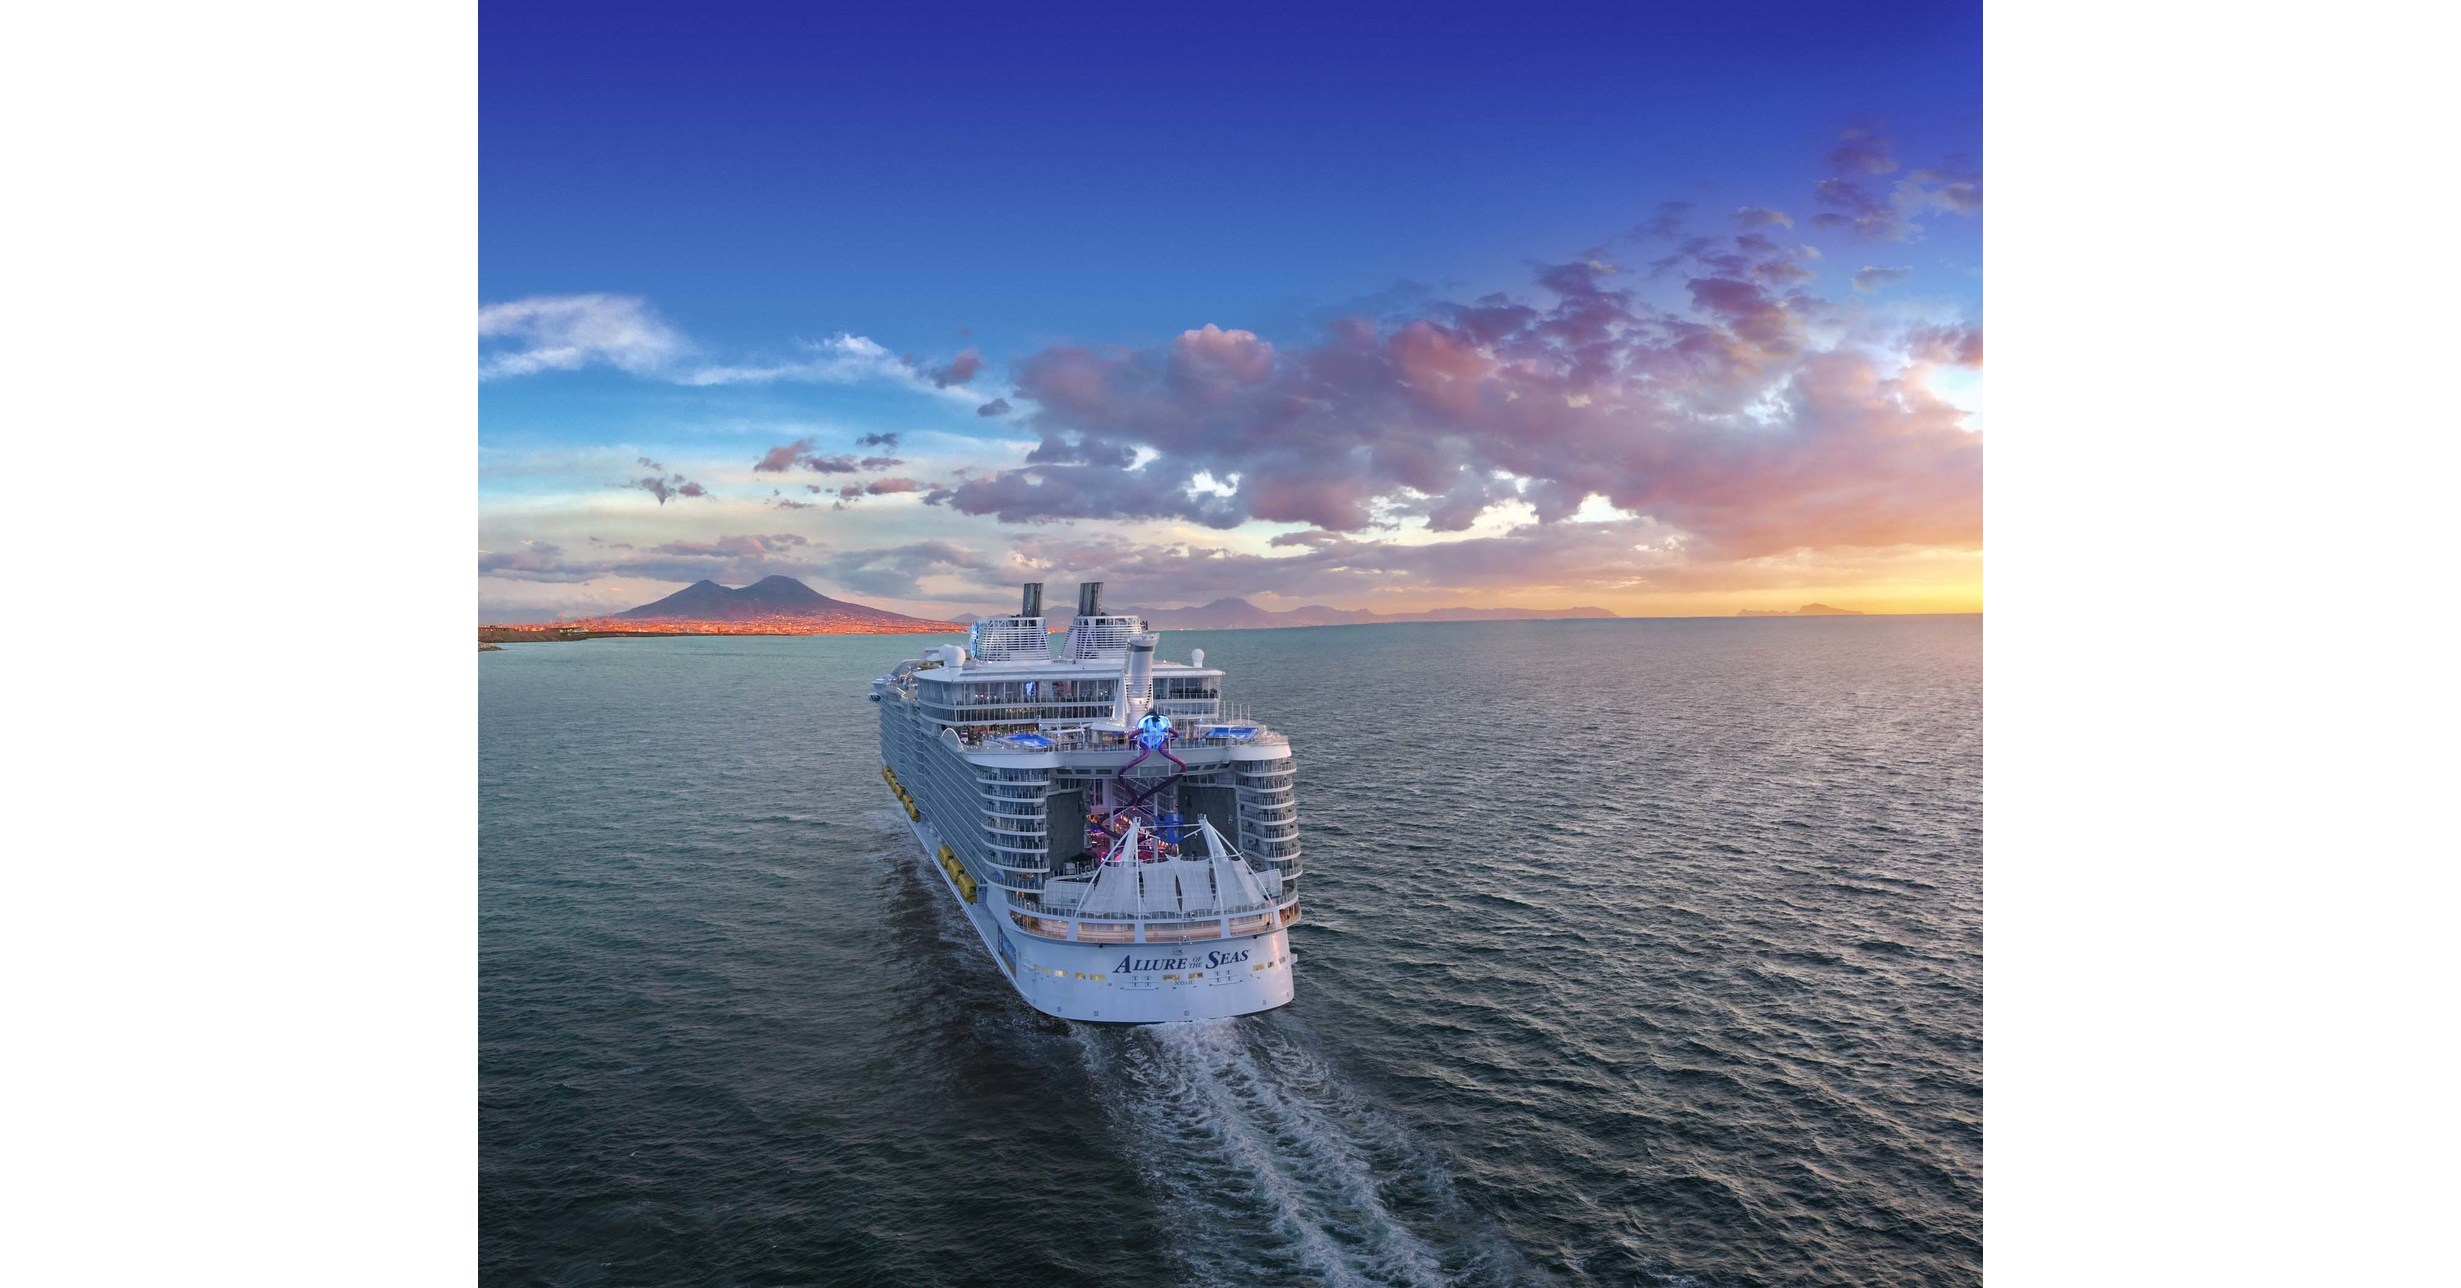 New, Amplified Adventures On Royal Caribbean's Allure of the